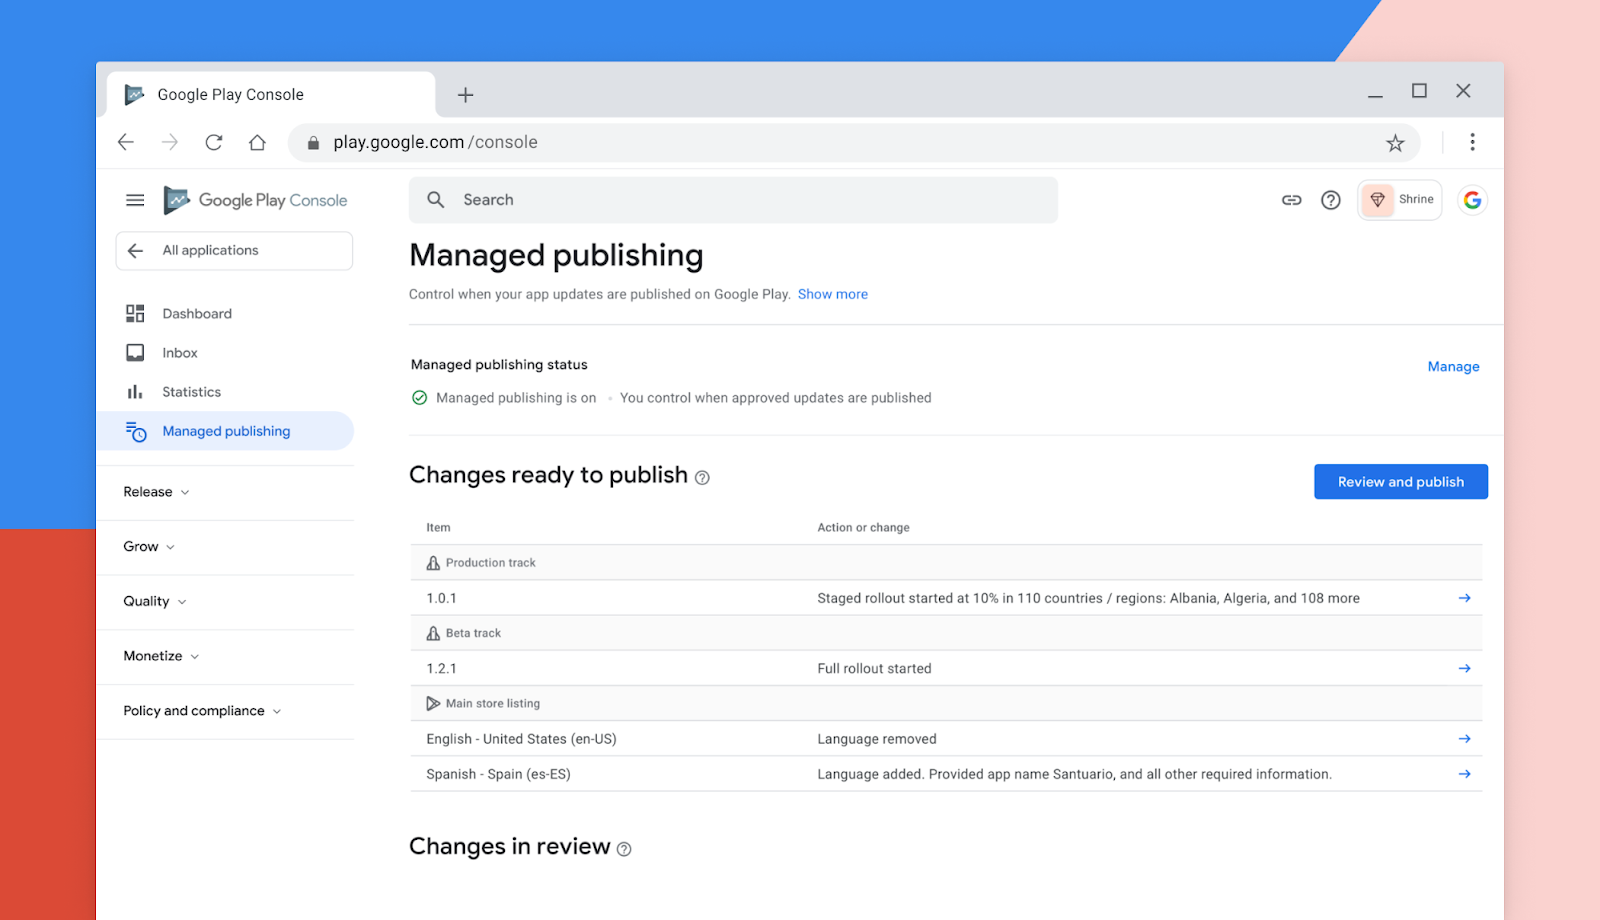 Managed Publishing on Google Play Console